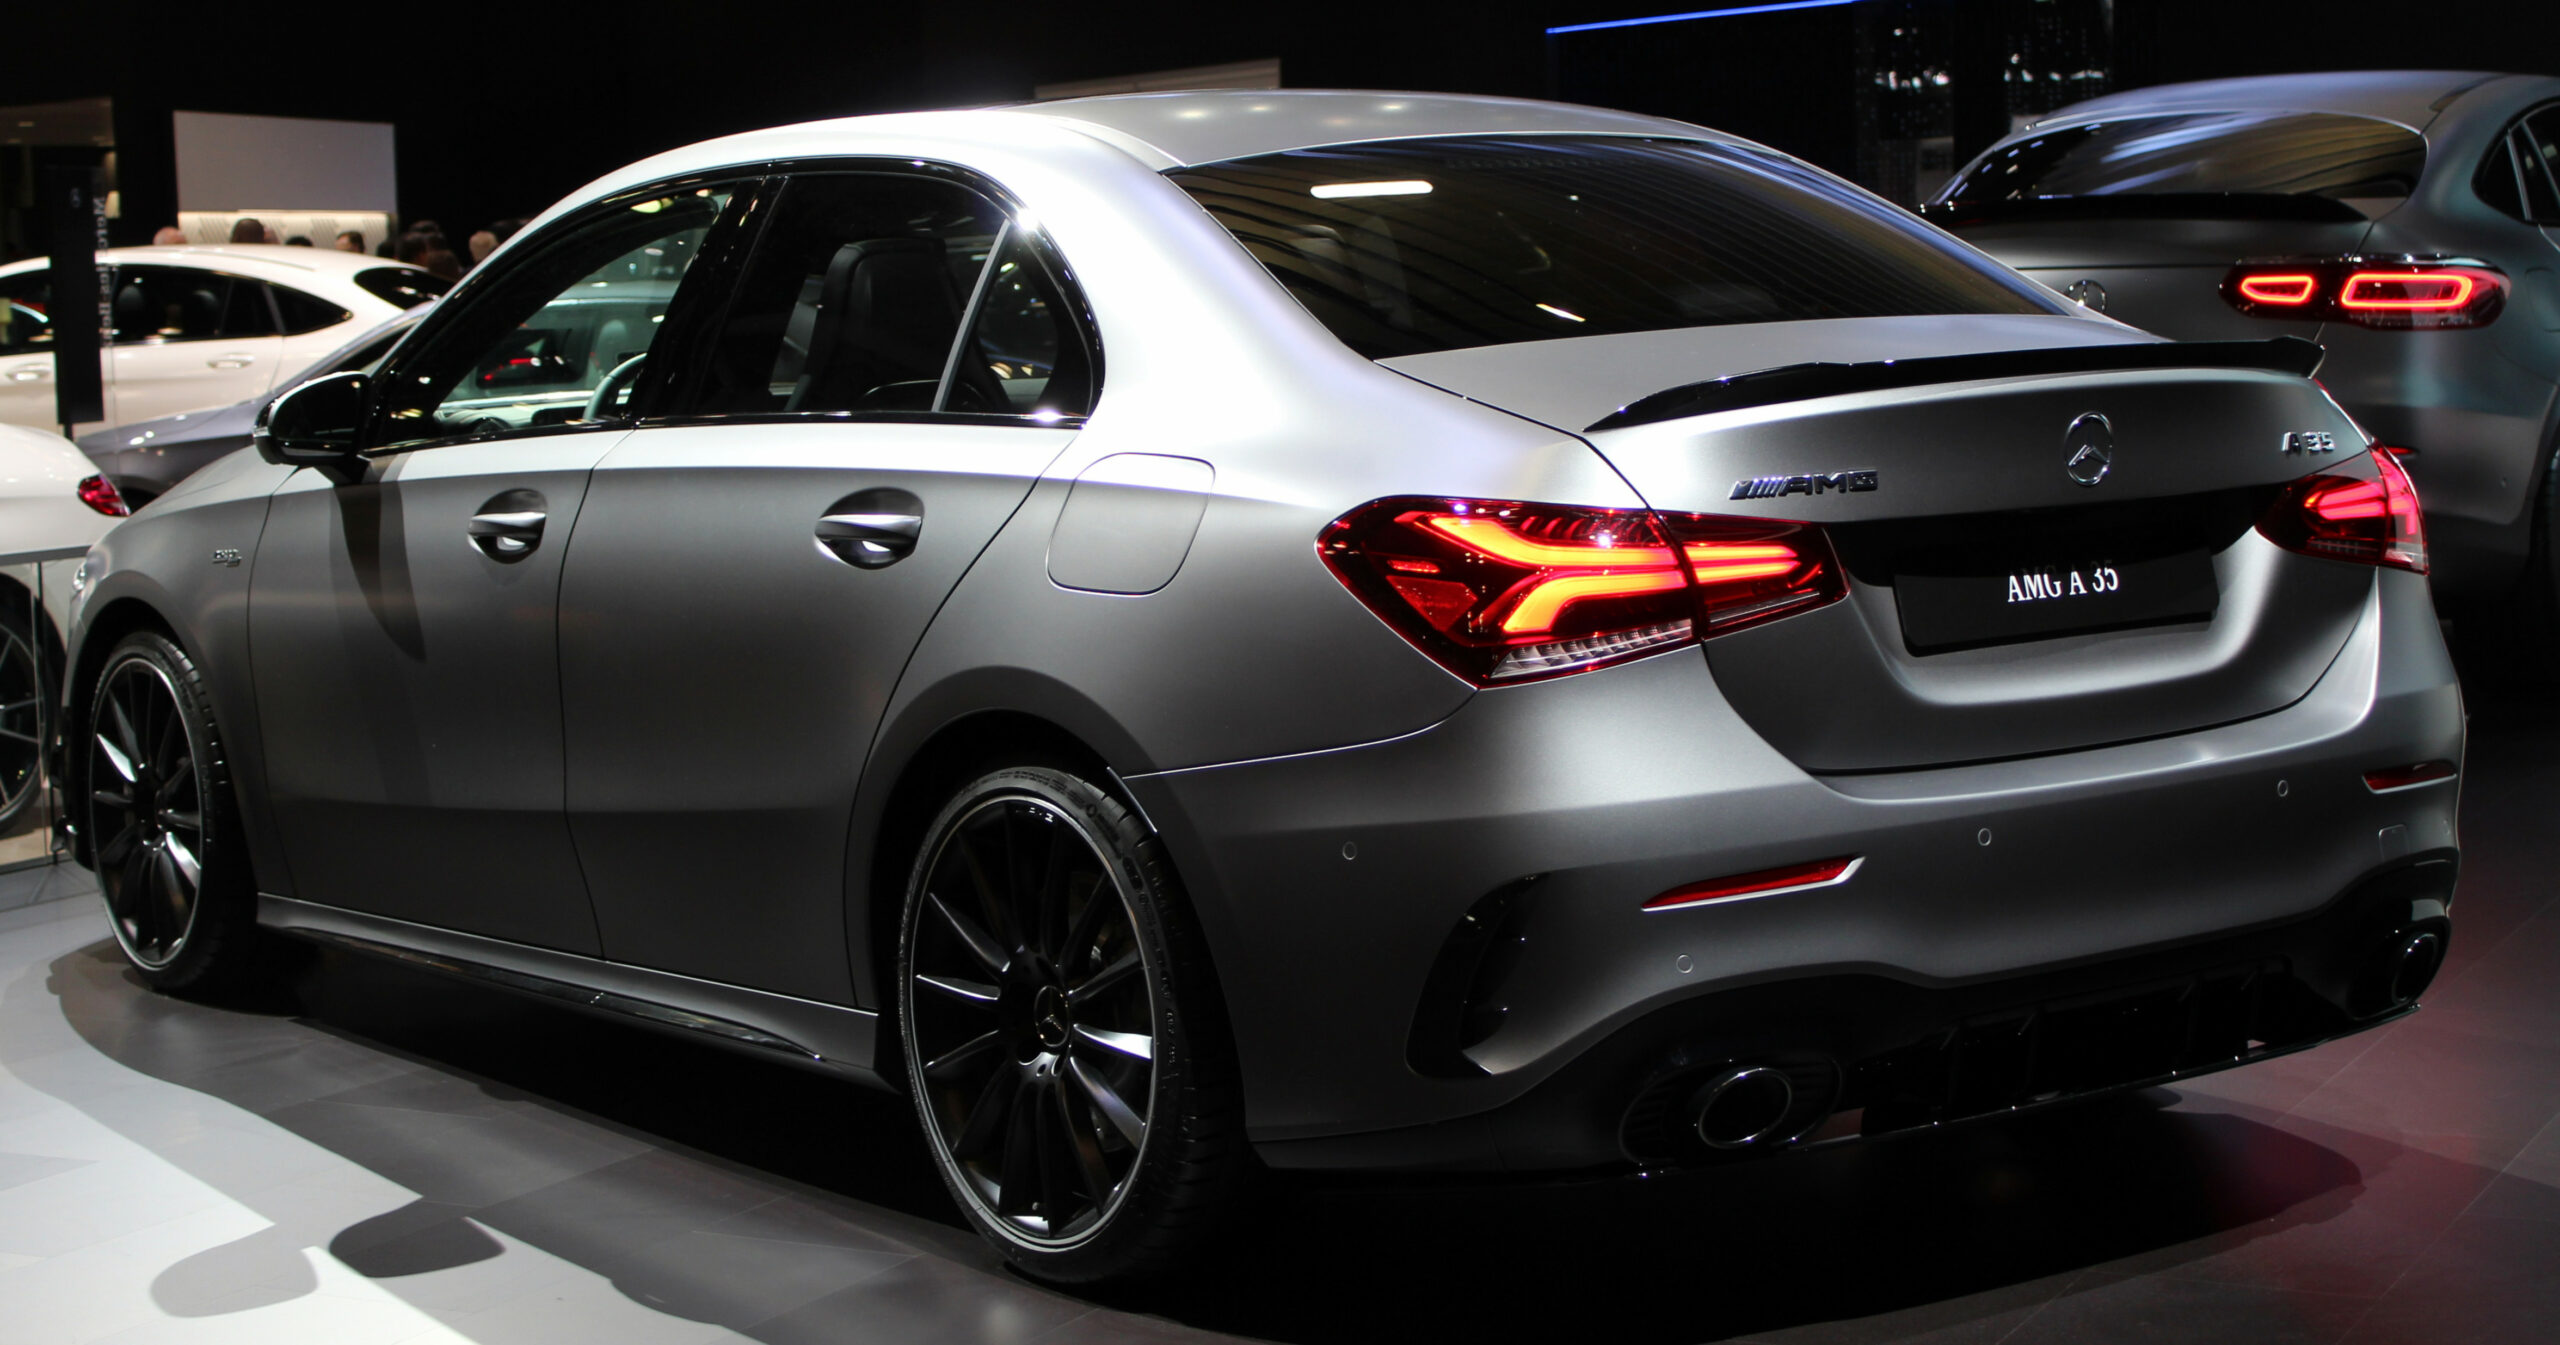 Datei:9 Mercedes-AMG A 9 9Matic sedan rear NYIAS 9.jpg ...